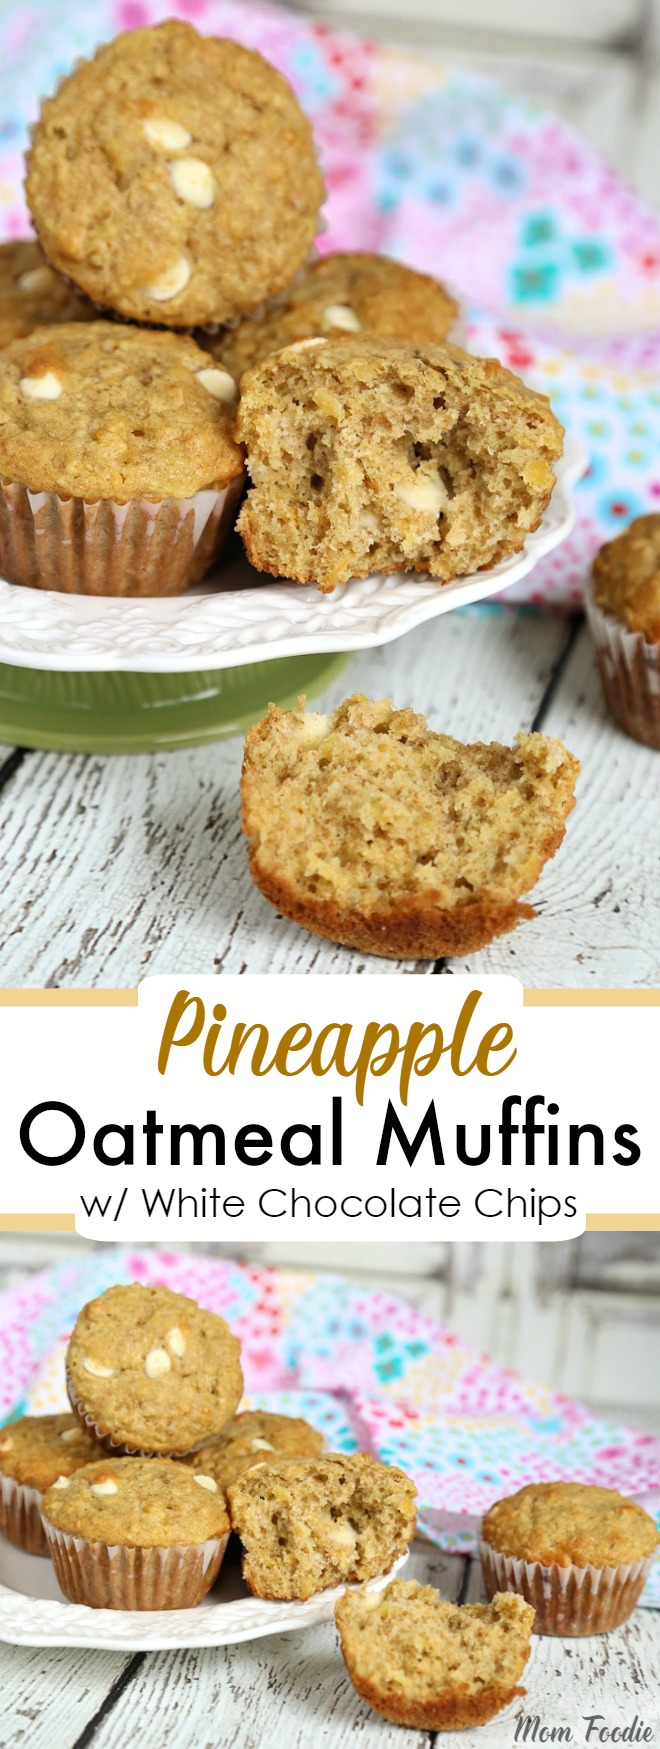 Pineapple Oatmeal Muffins Recipe with white chocolate chips